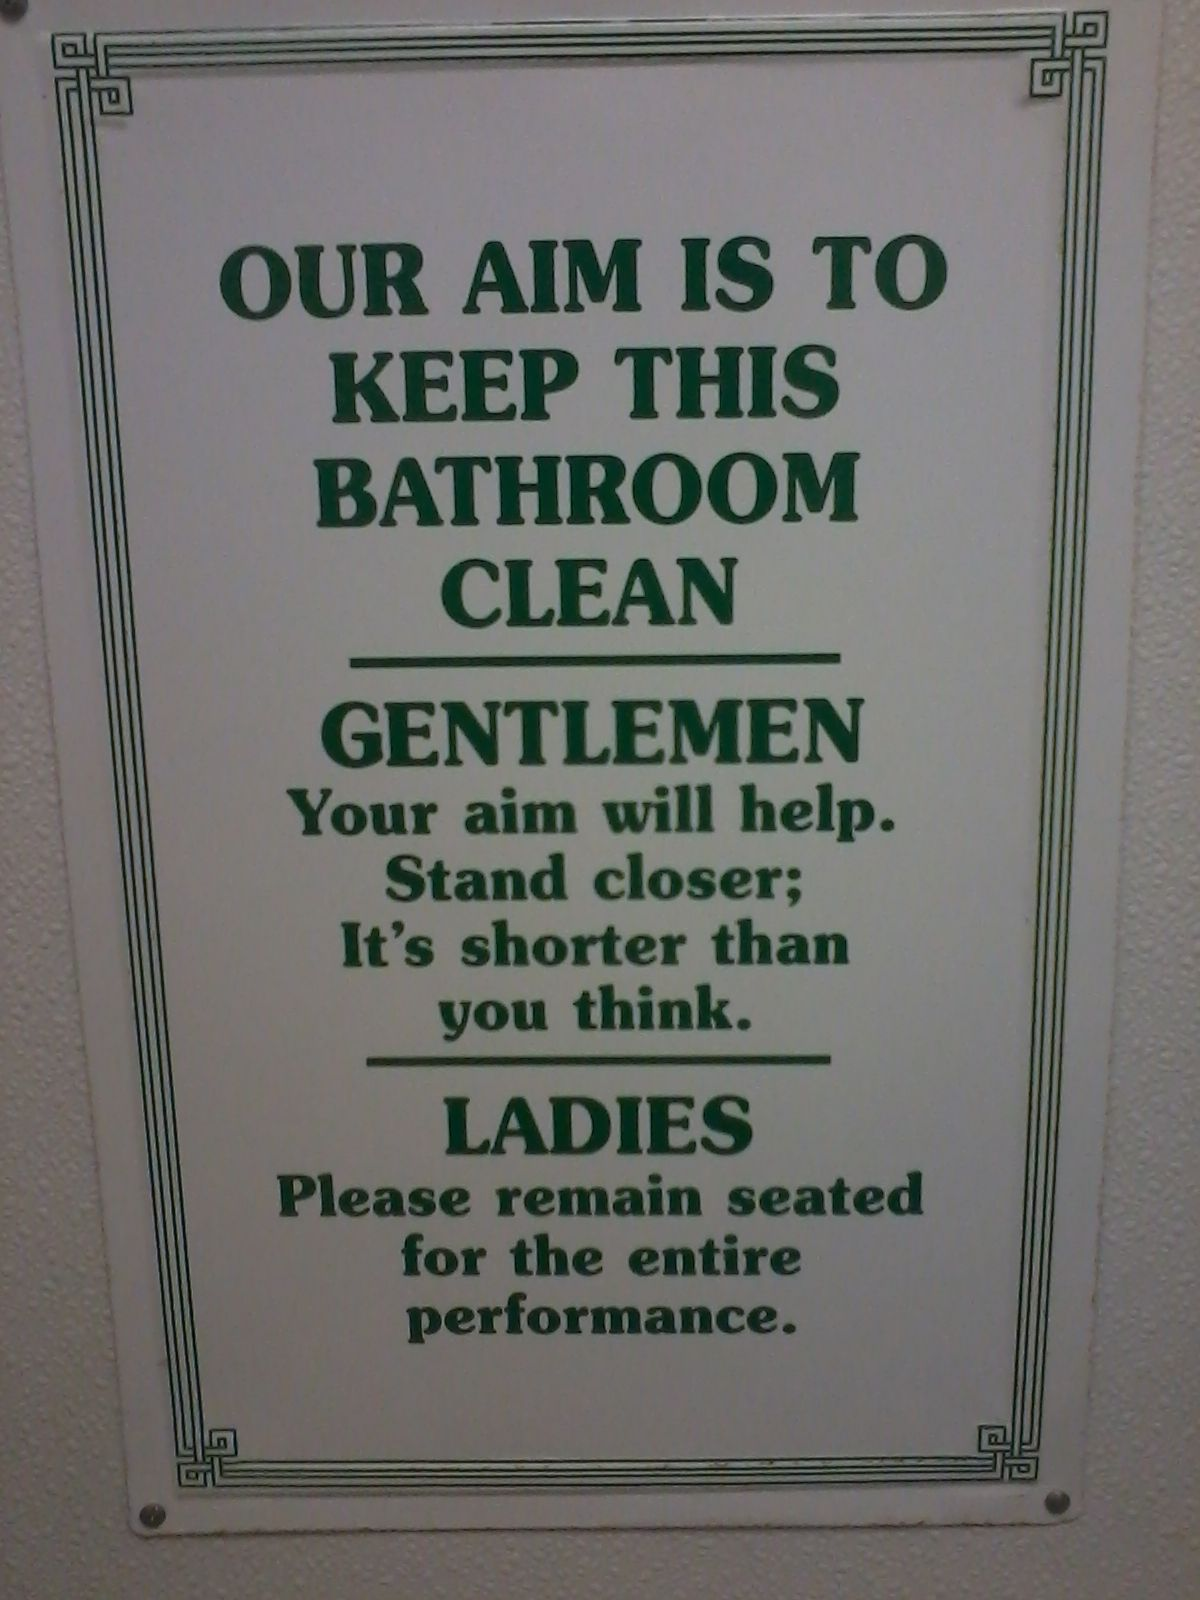 Found this in a bathroom off of a highway..funny!